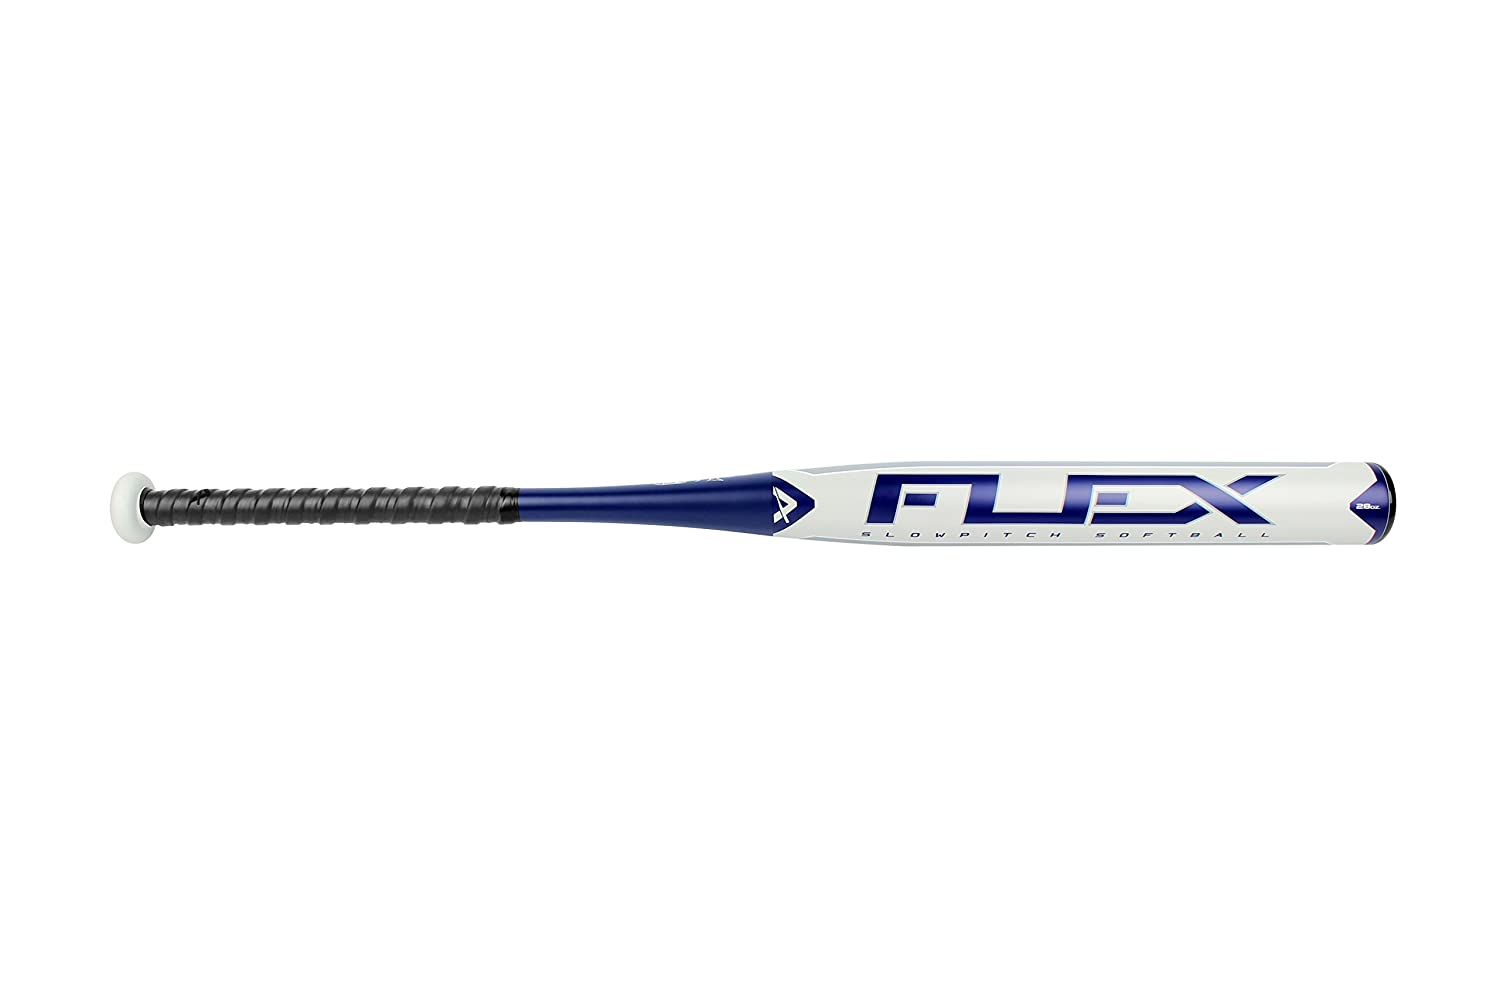 Best Single Wall Softball Bats 2019 (Top 6 Rated)